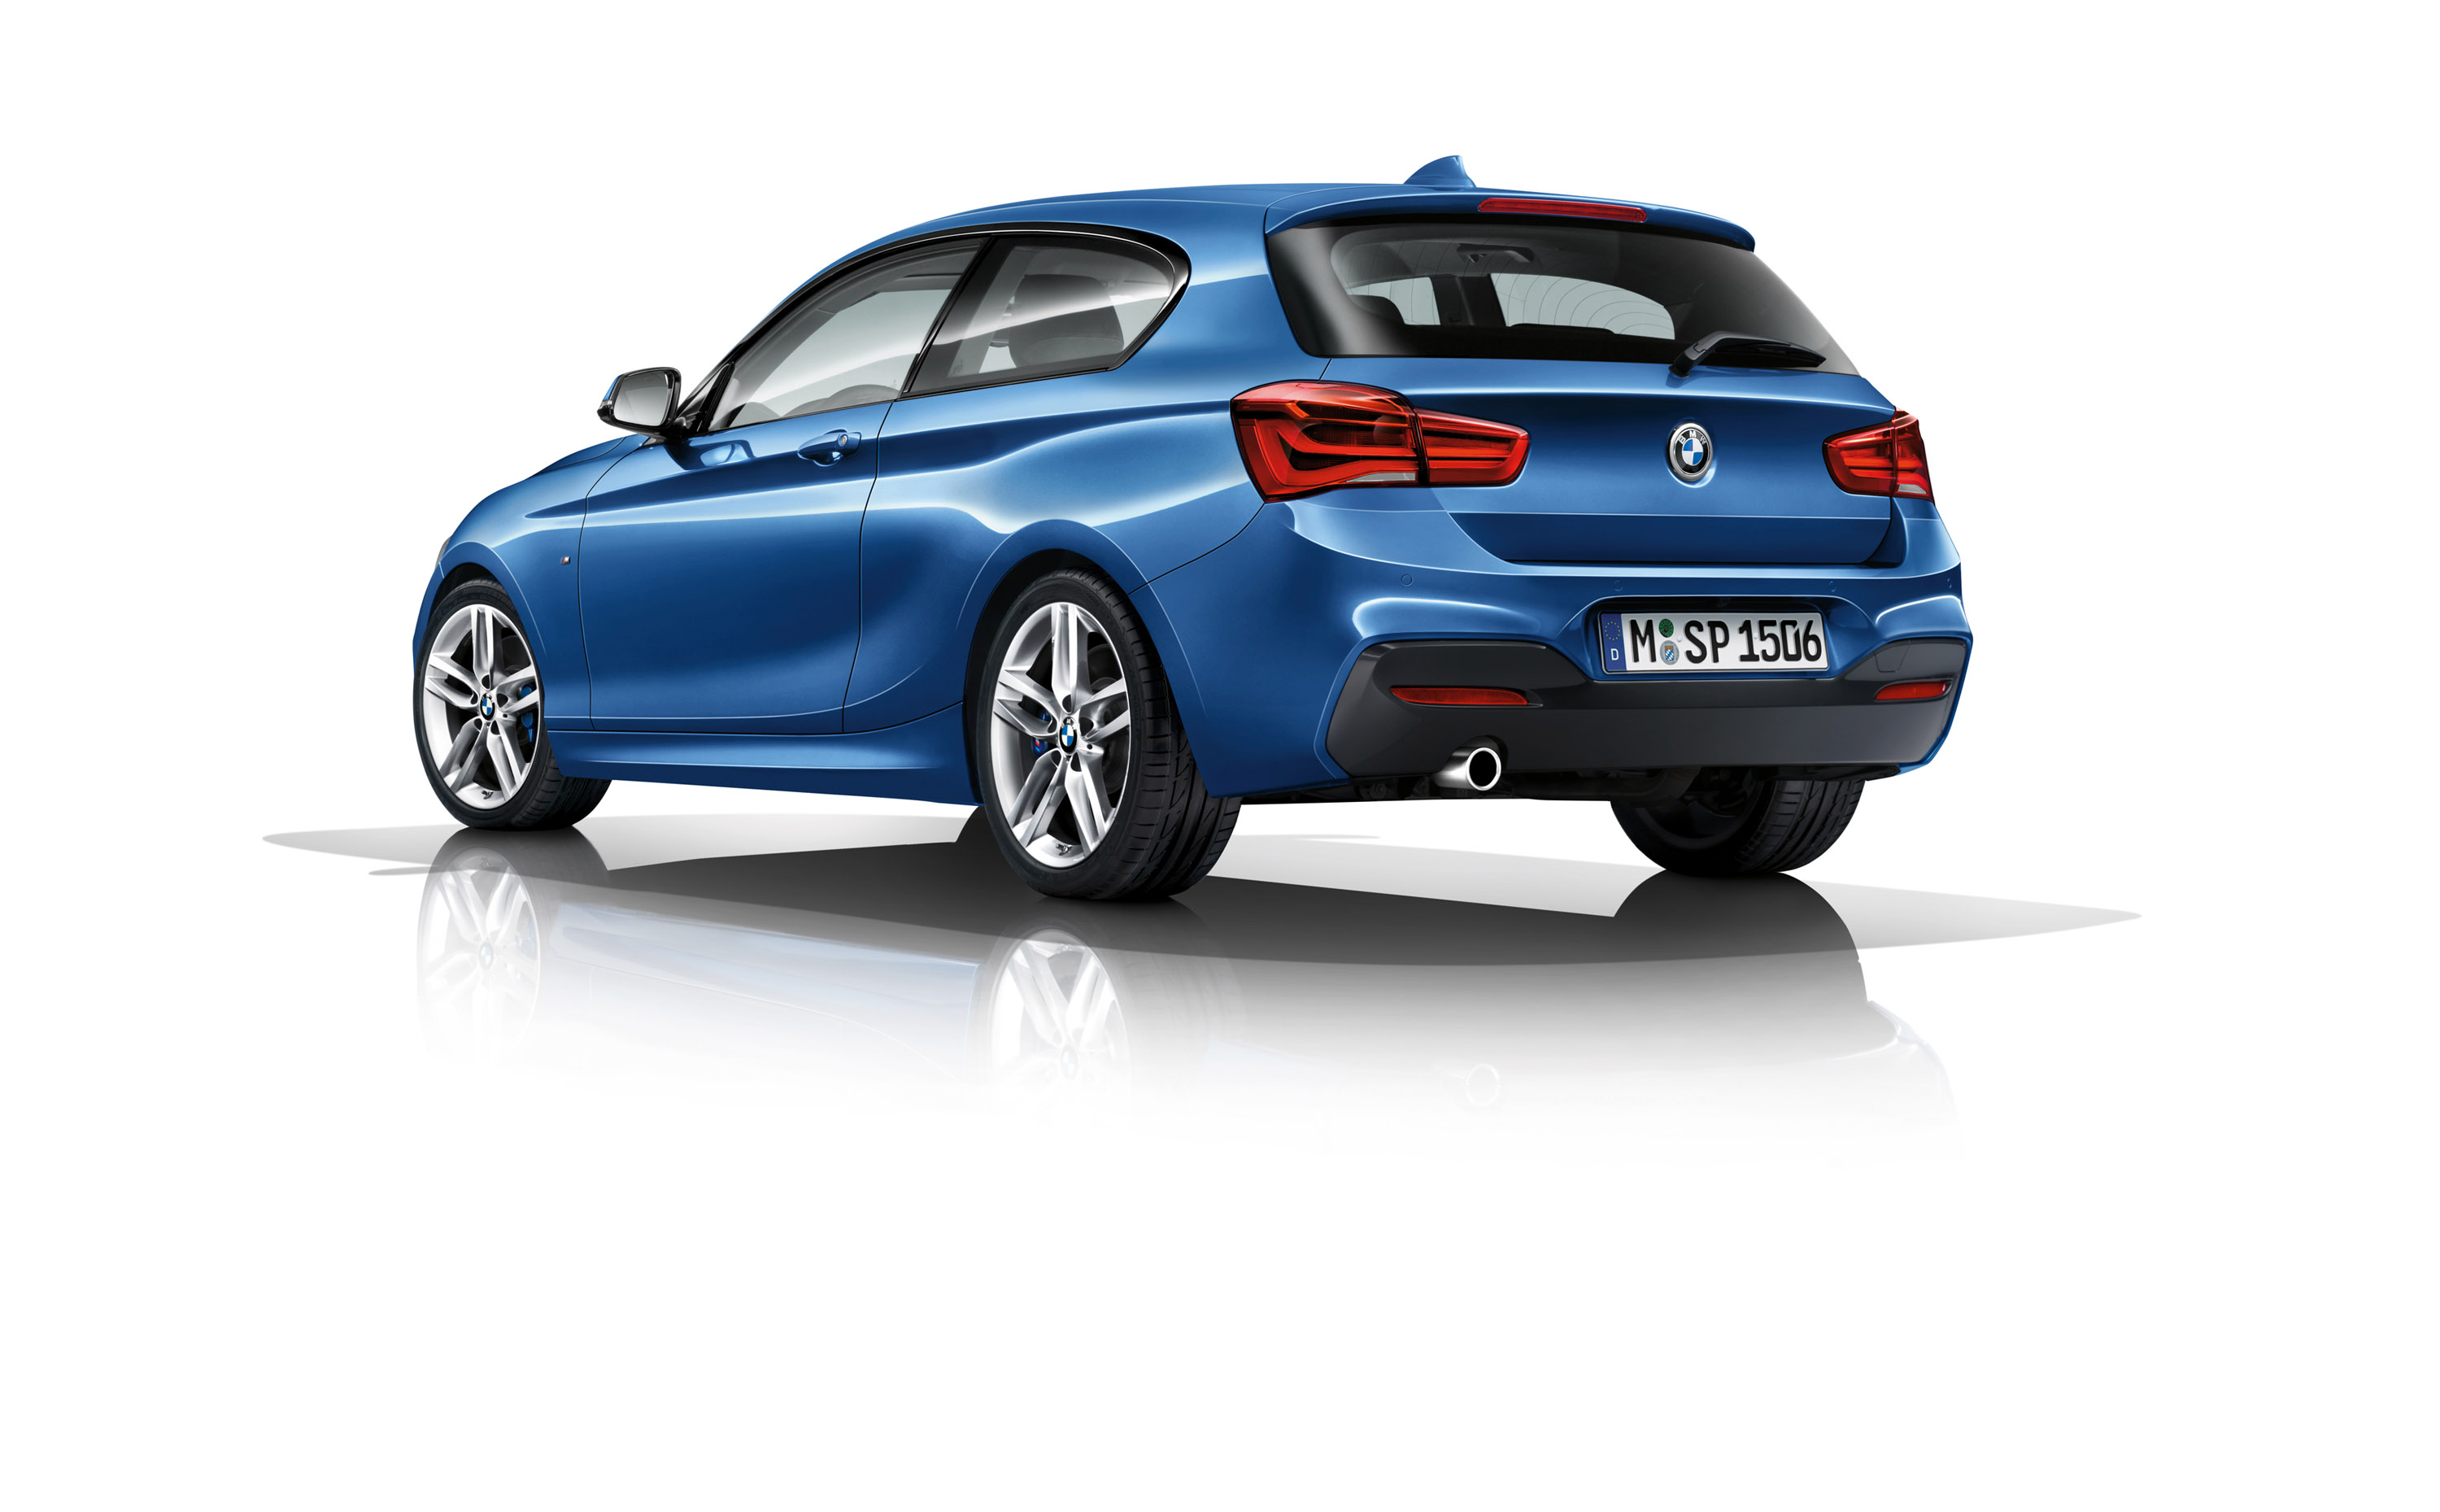 2019 BMW 1 Series Range photo - 5